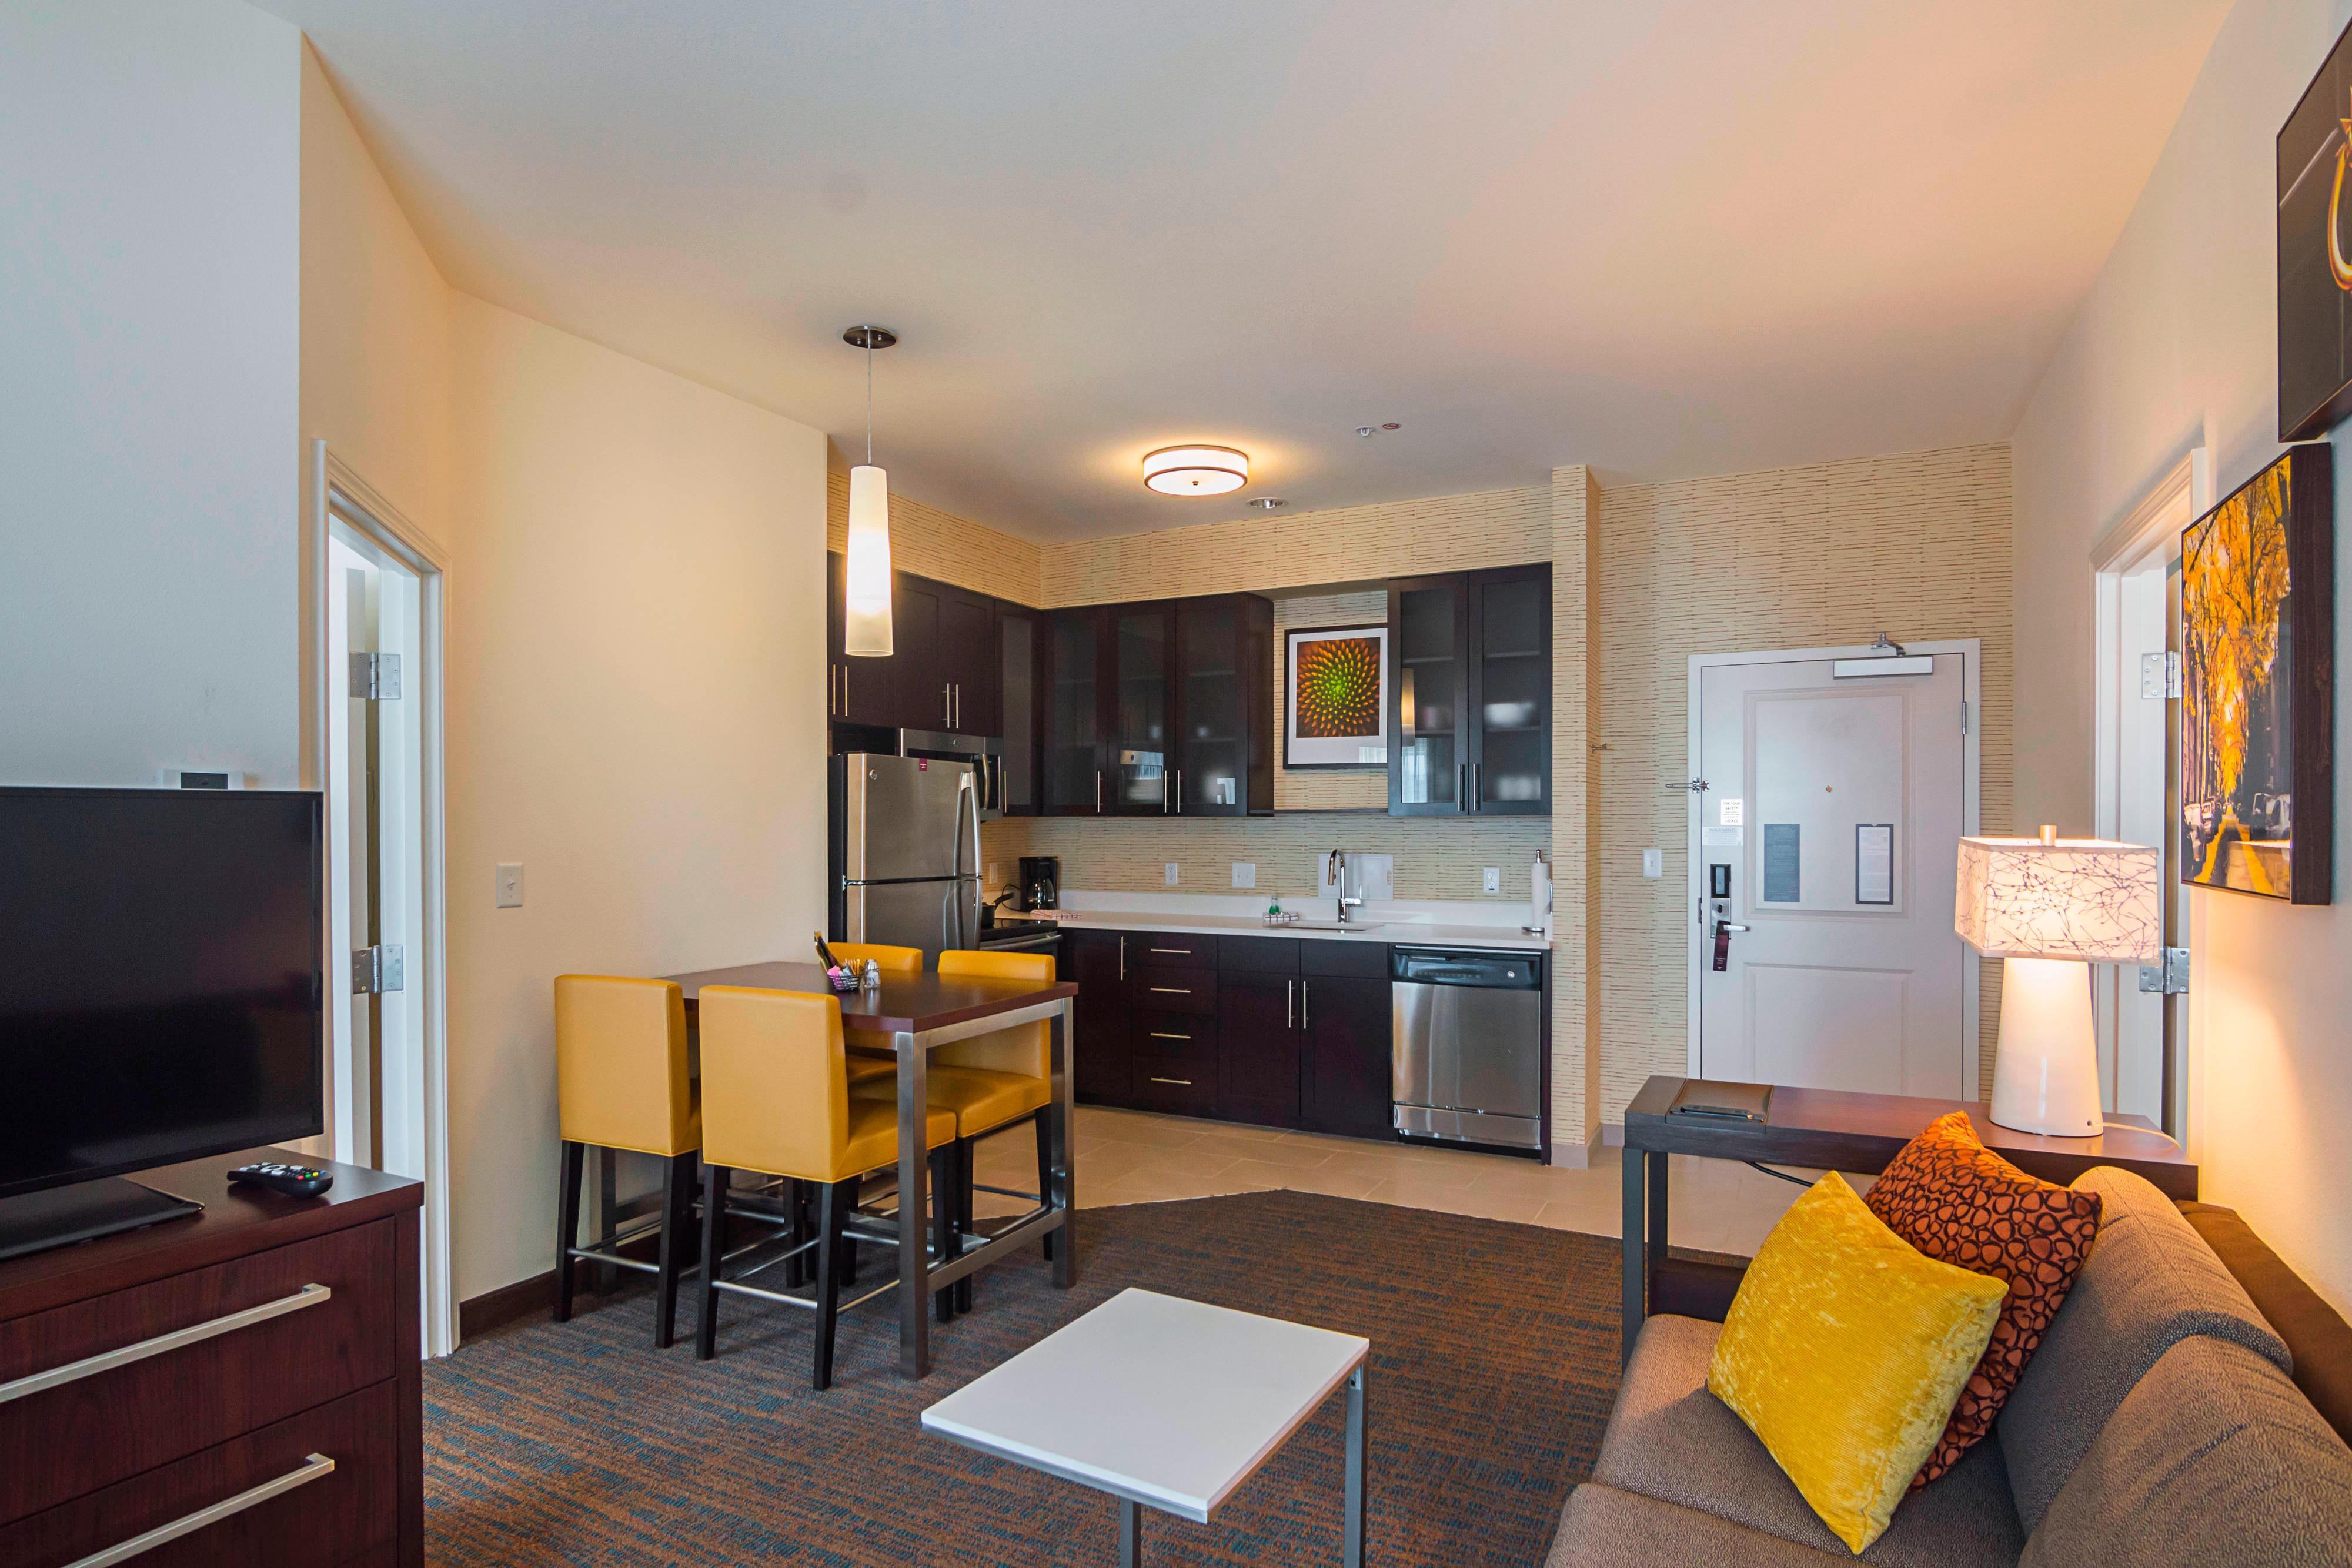 west elmwood all bedroom hor hotel suite residence rooms inn clsc suites is new orleans hotels msyew in an